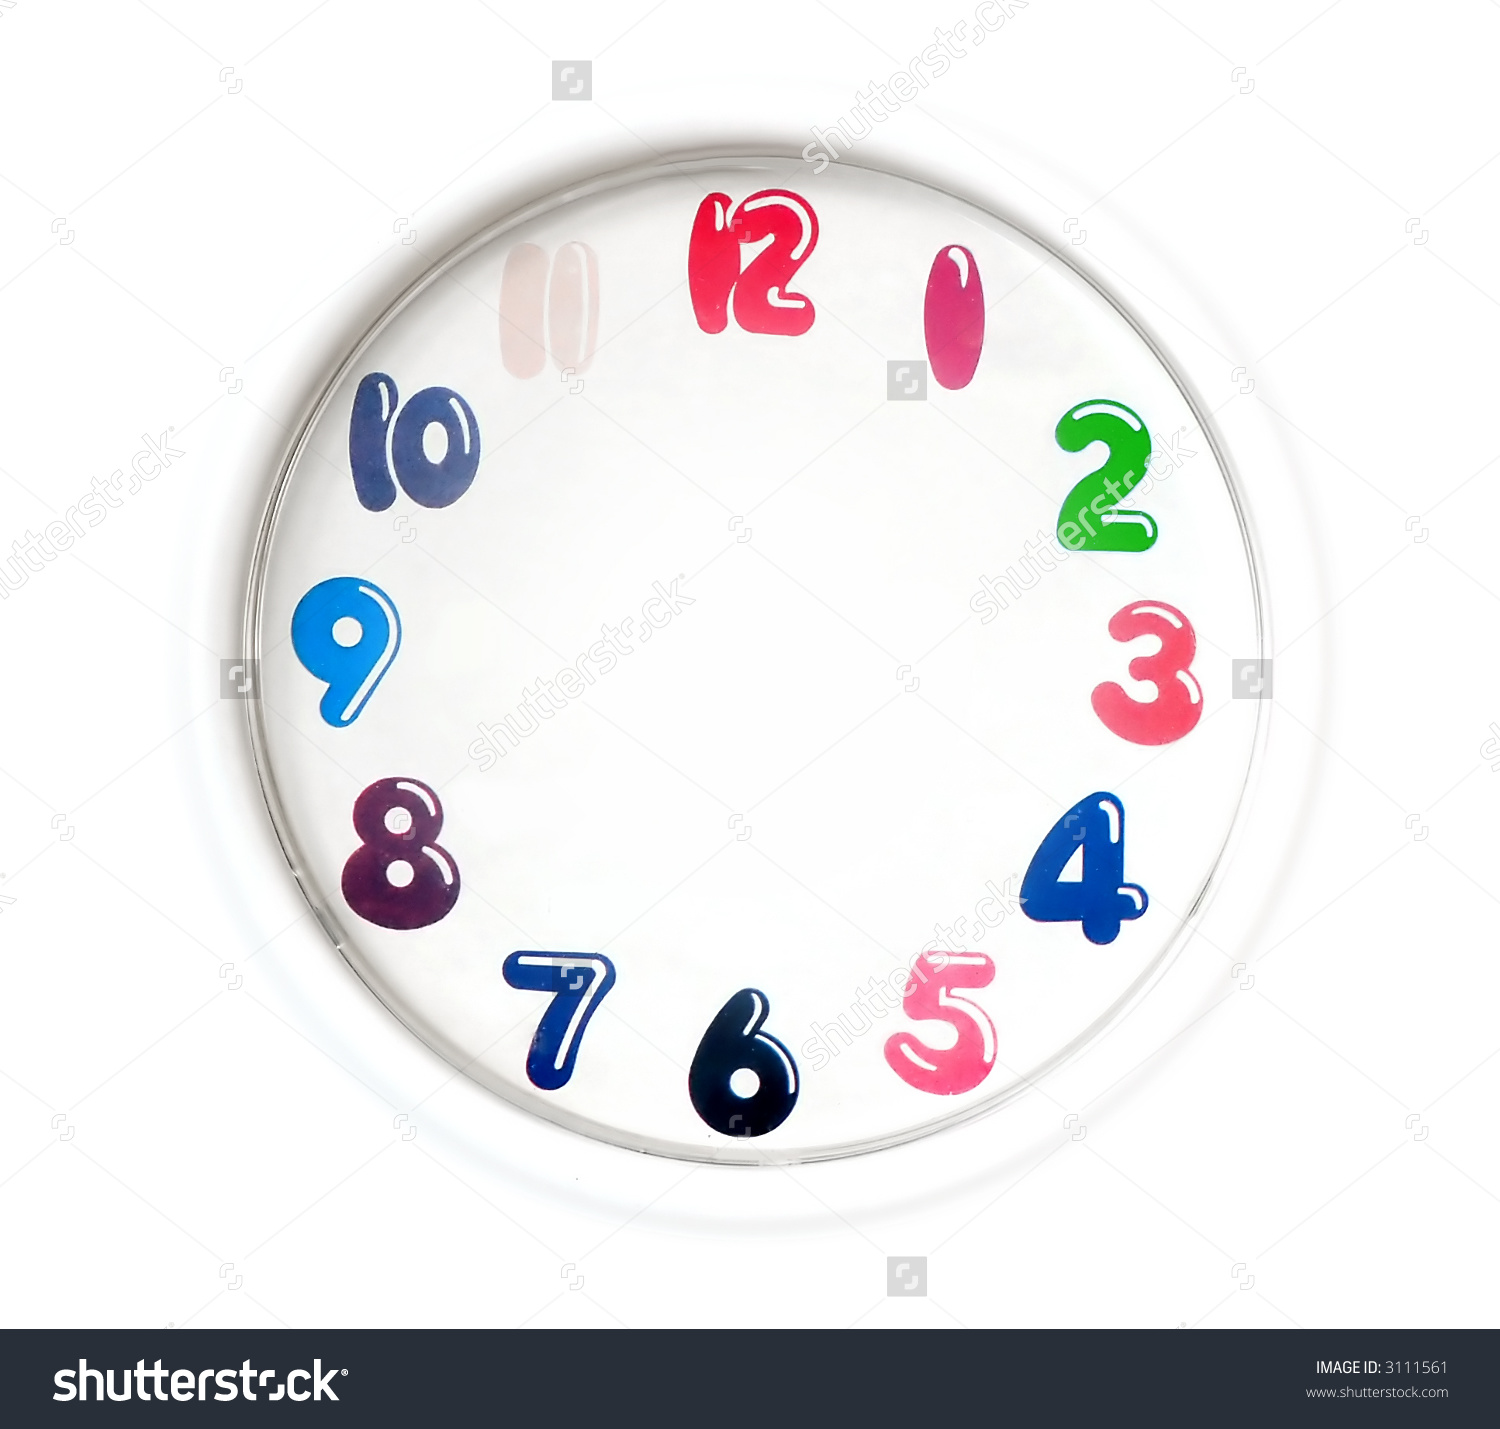 clock with no hands clipart 20 free cliparts